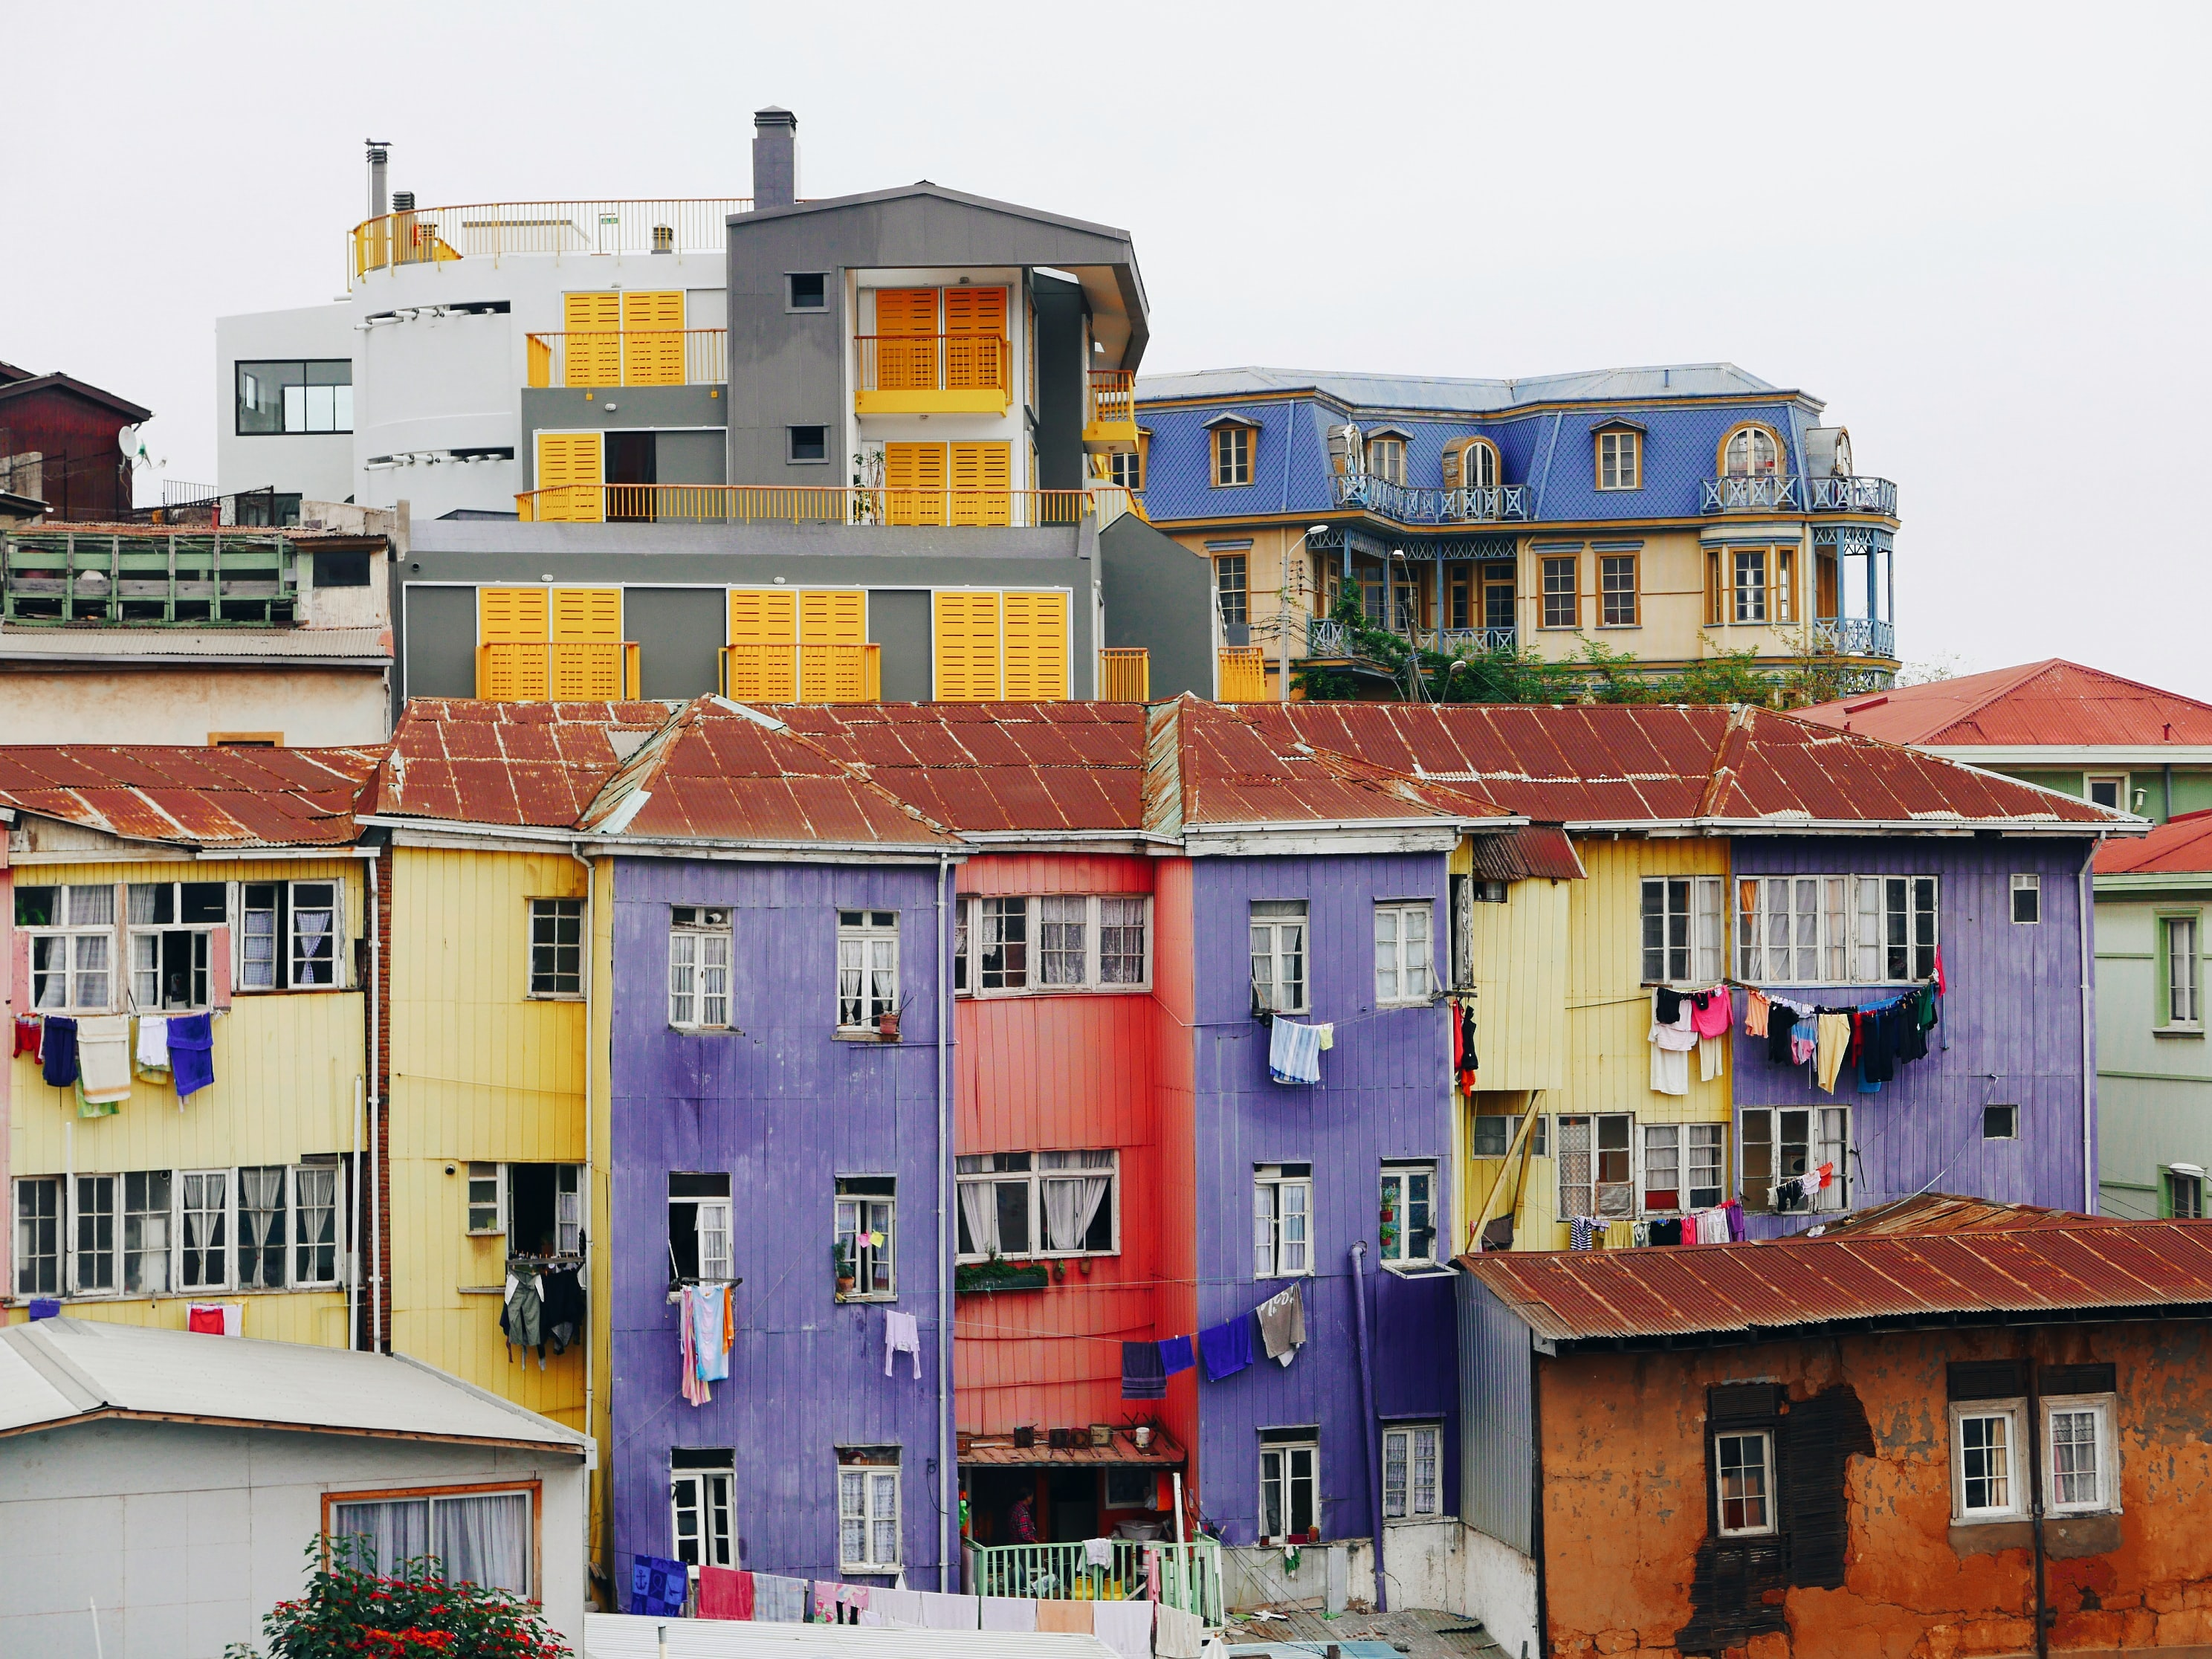 assorted-color concrete buildings under white skies